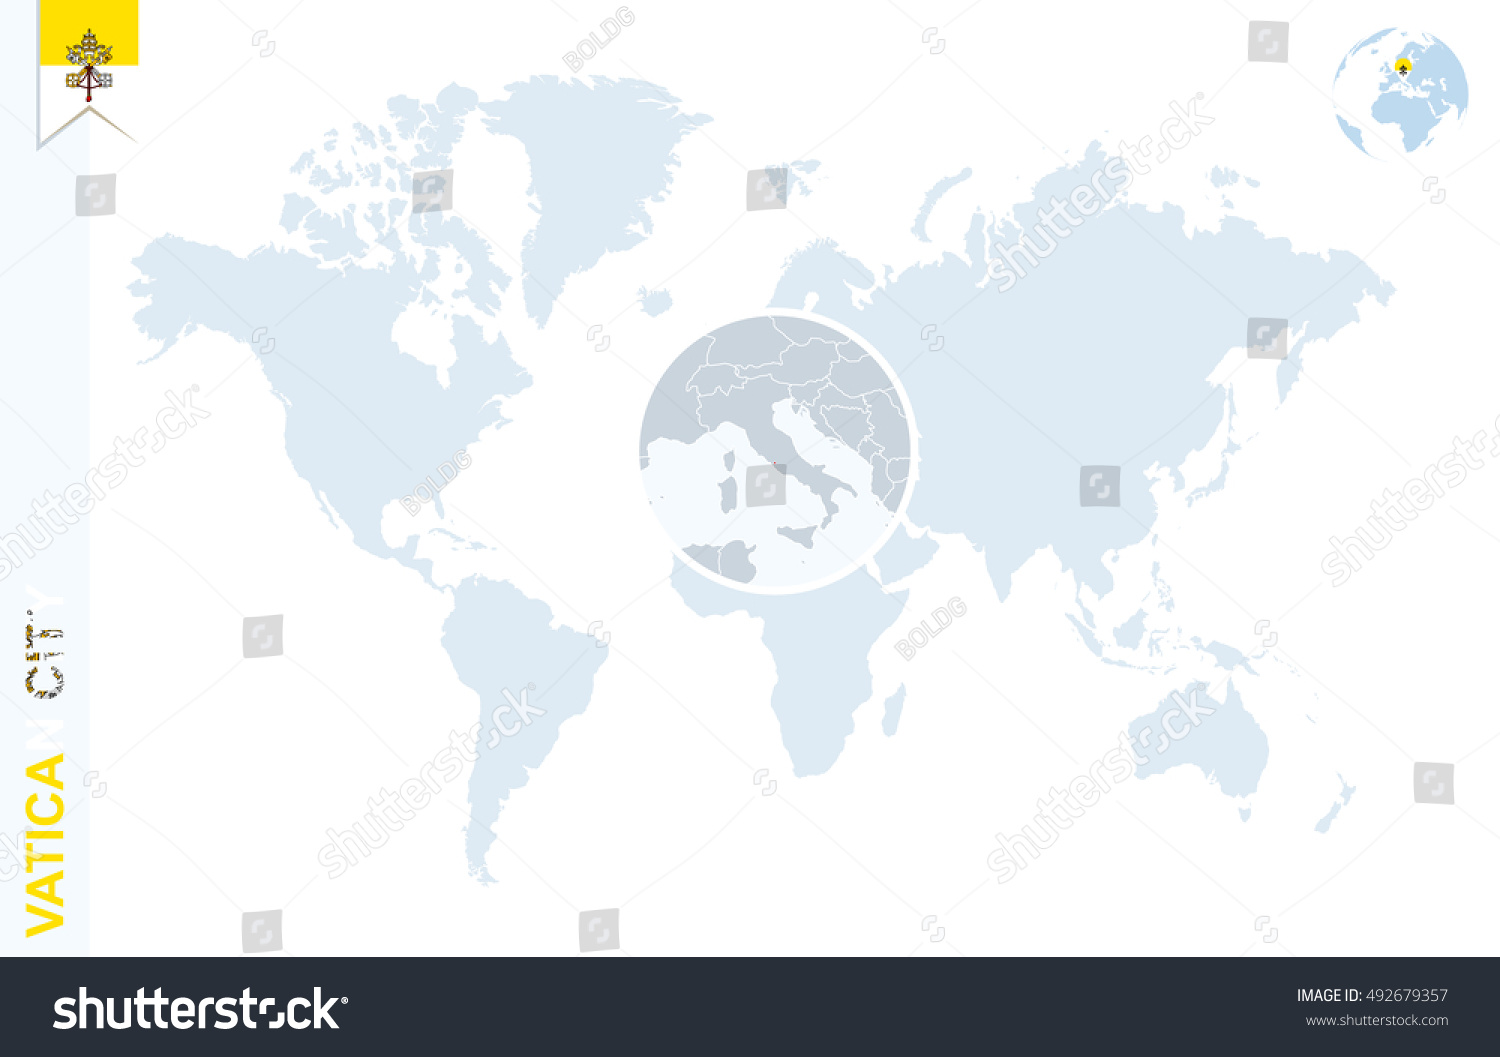 World map magnifying on vatican city stock illustration 492679357 world map with magnifying on vatican city blue earth globe with vatican city flag pin gumiabroncs Image collections